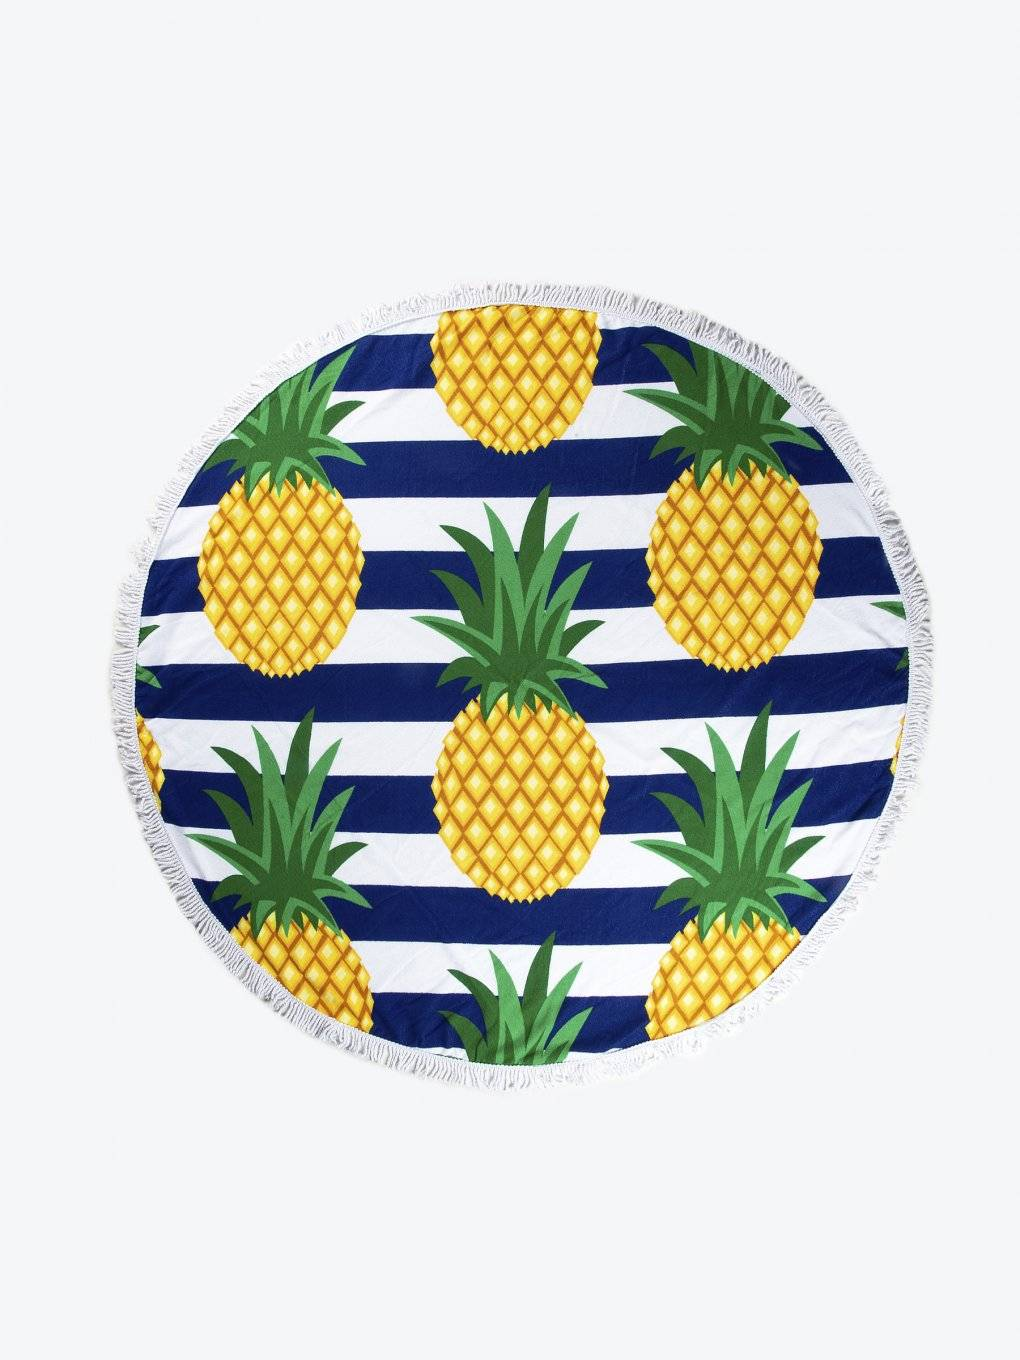 Beach towel with pineapple design and tassels